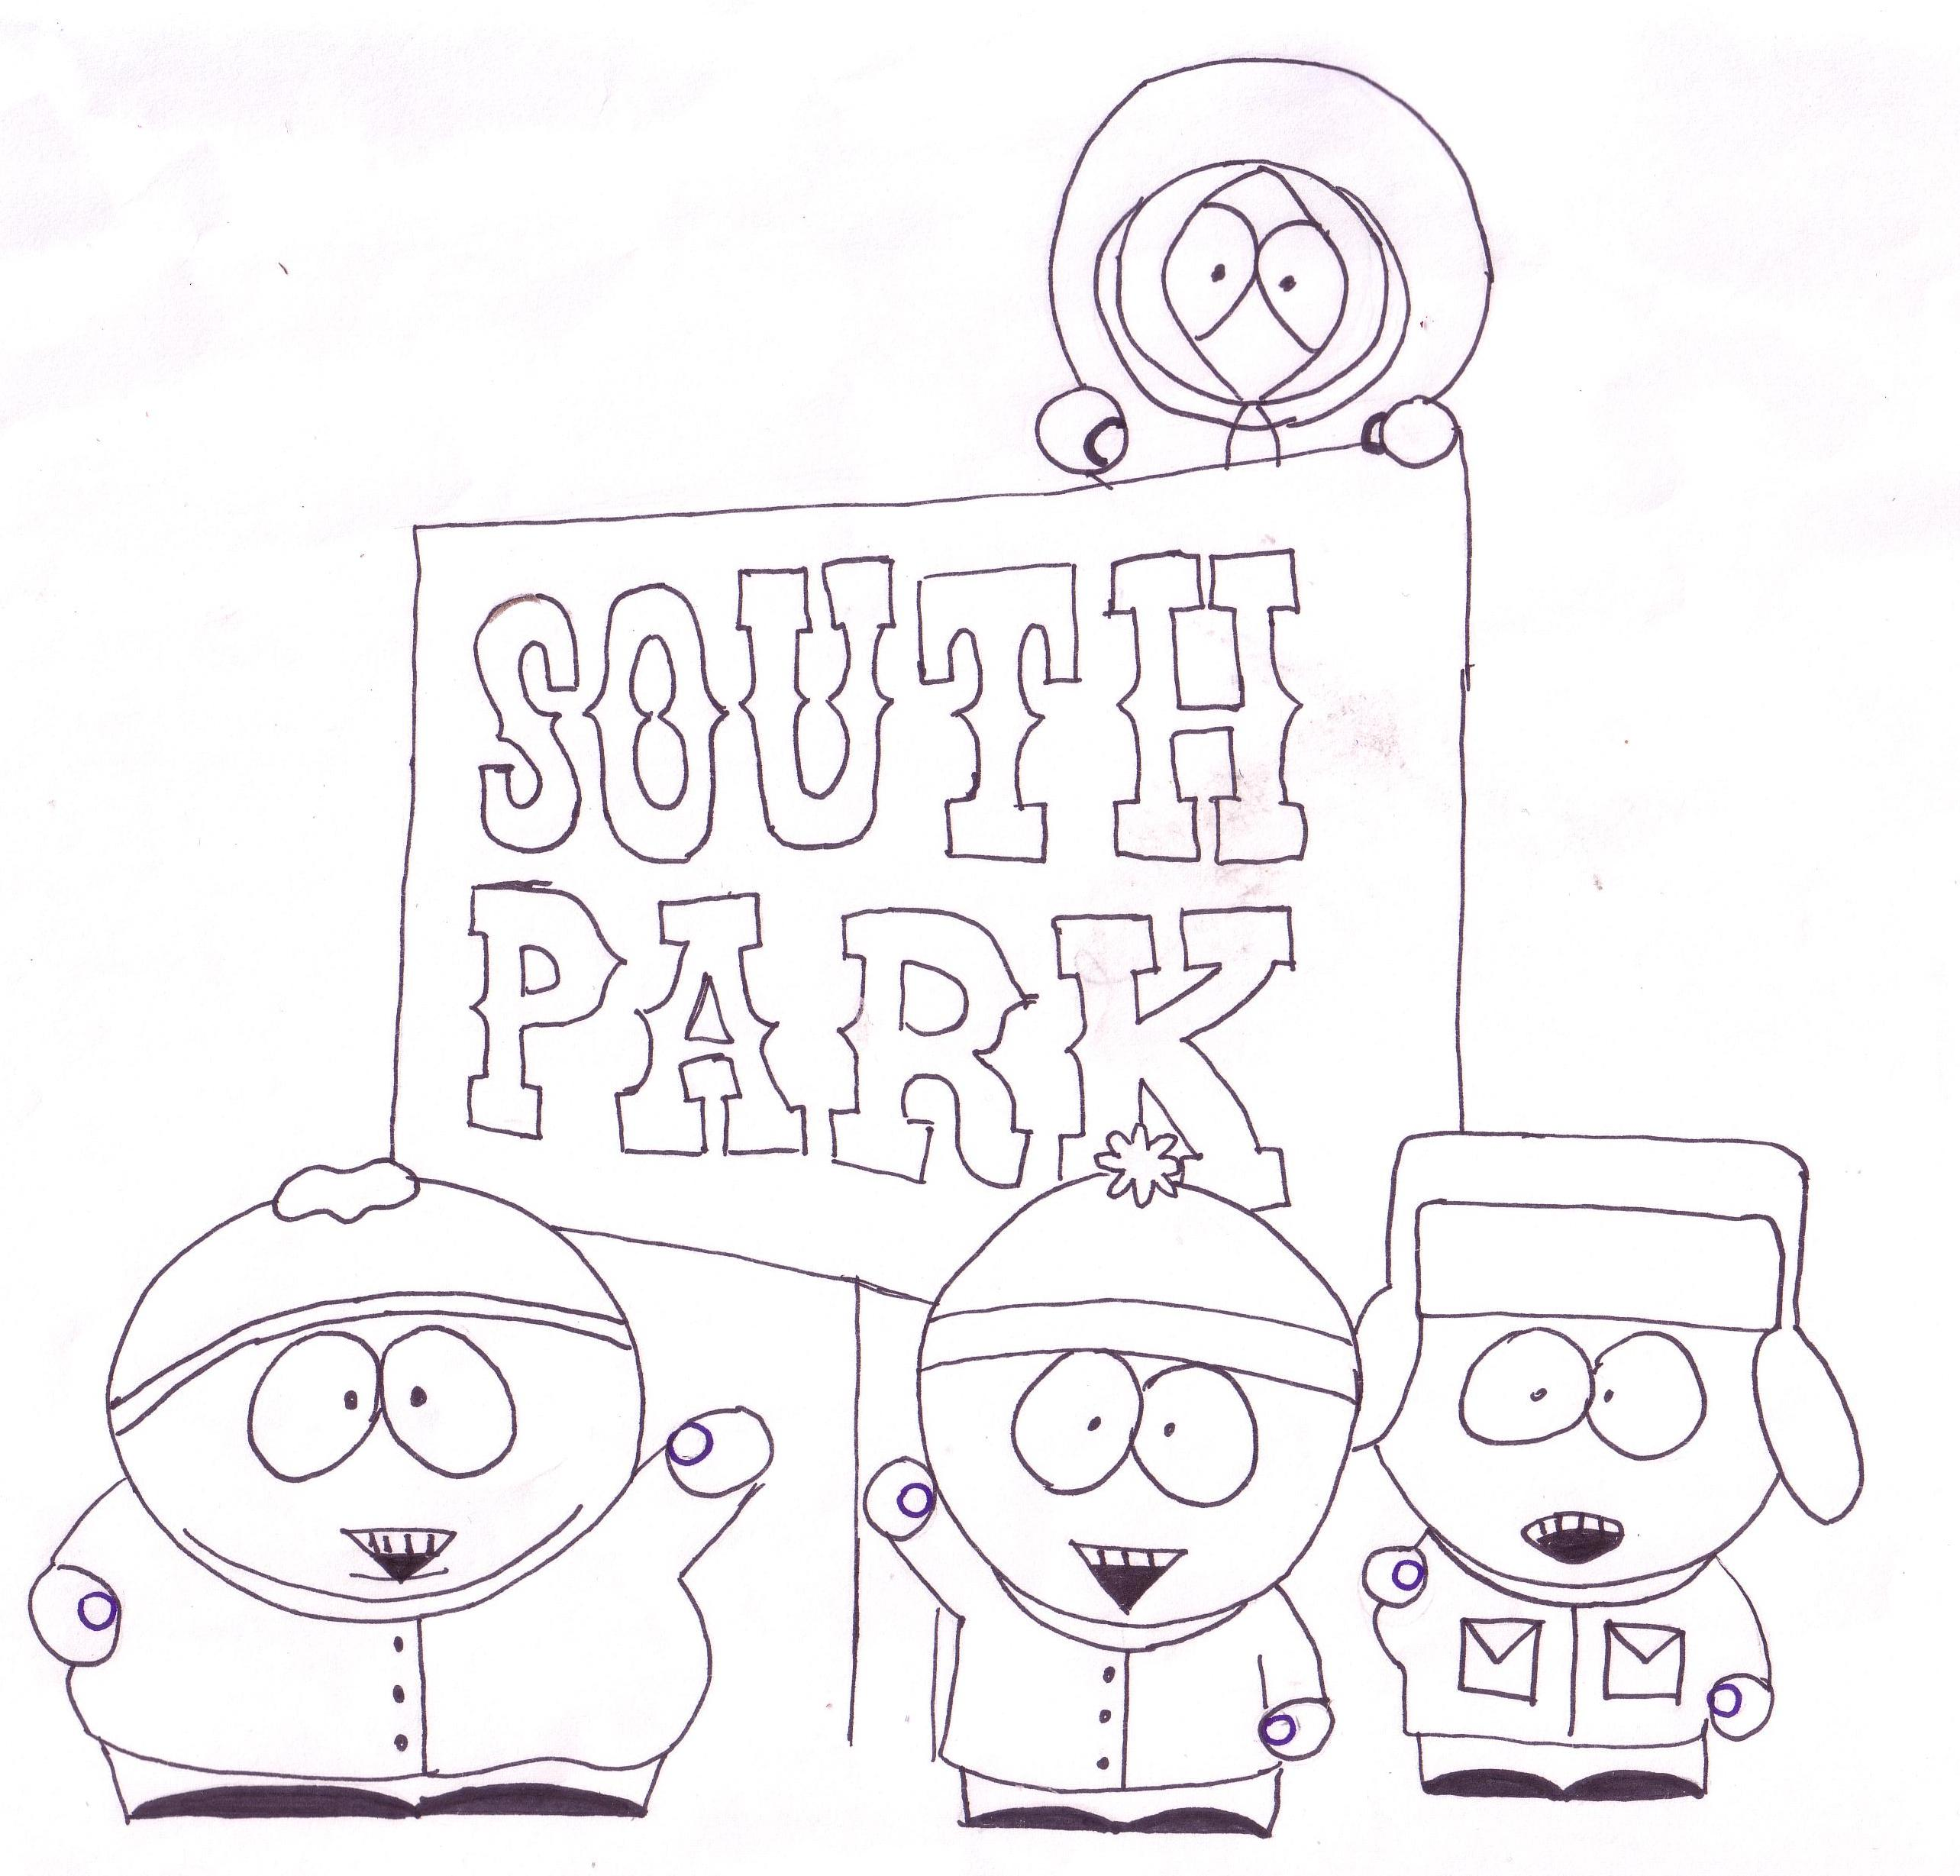 south park coloring pages - south park b and w by danielle 15 on deviantart